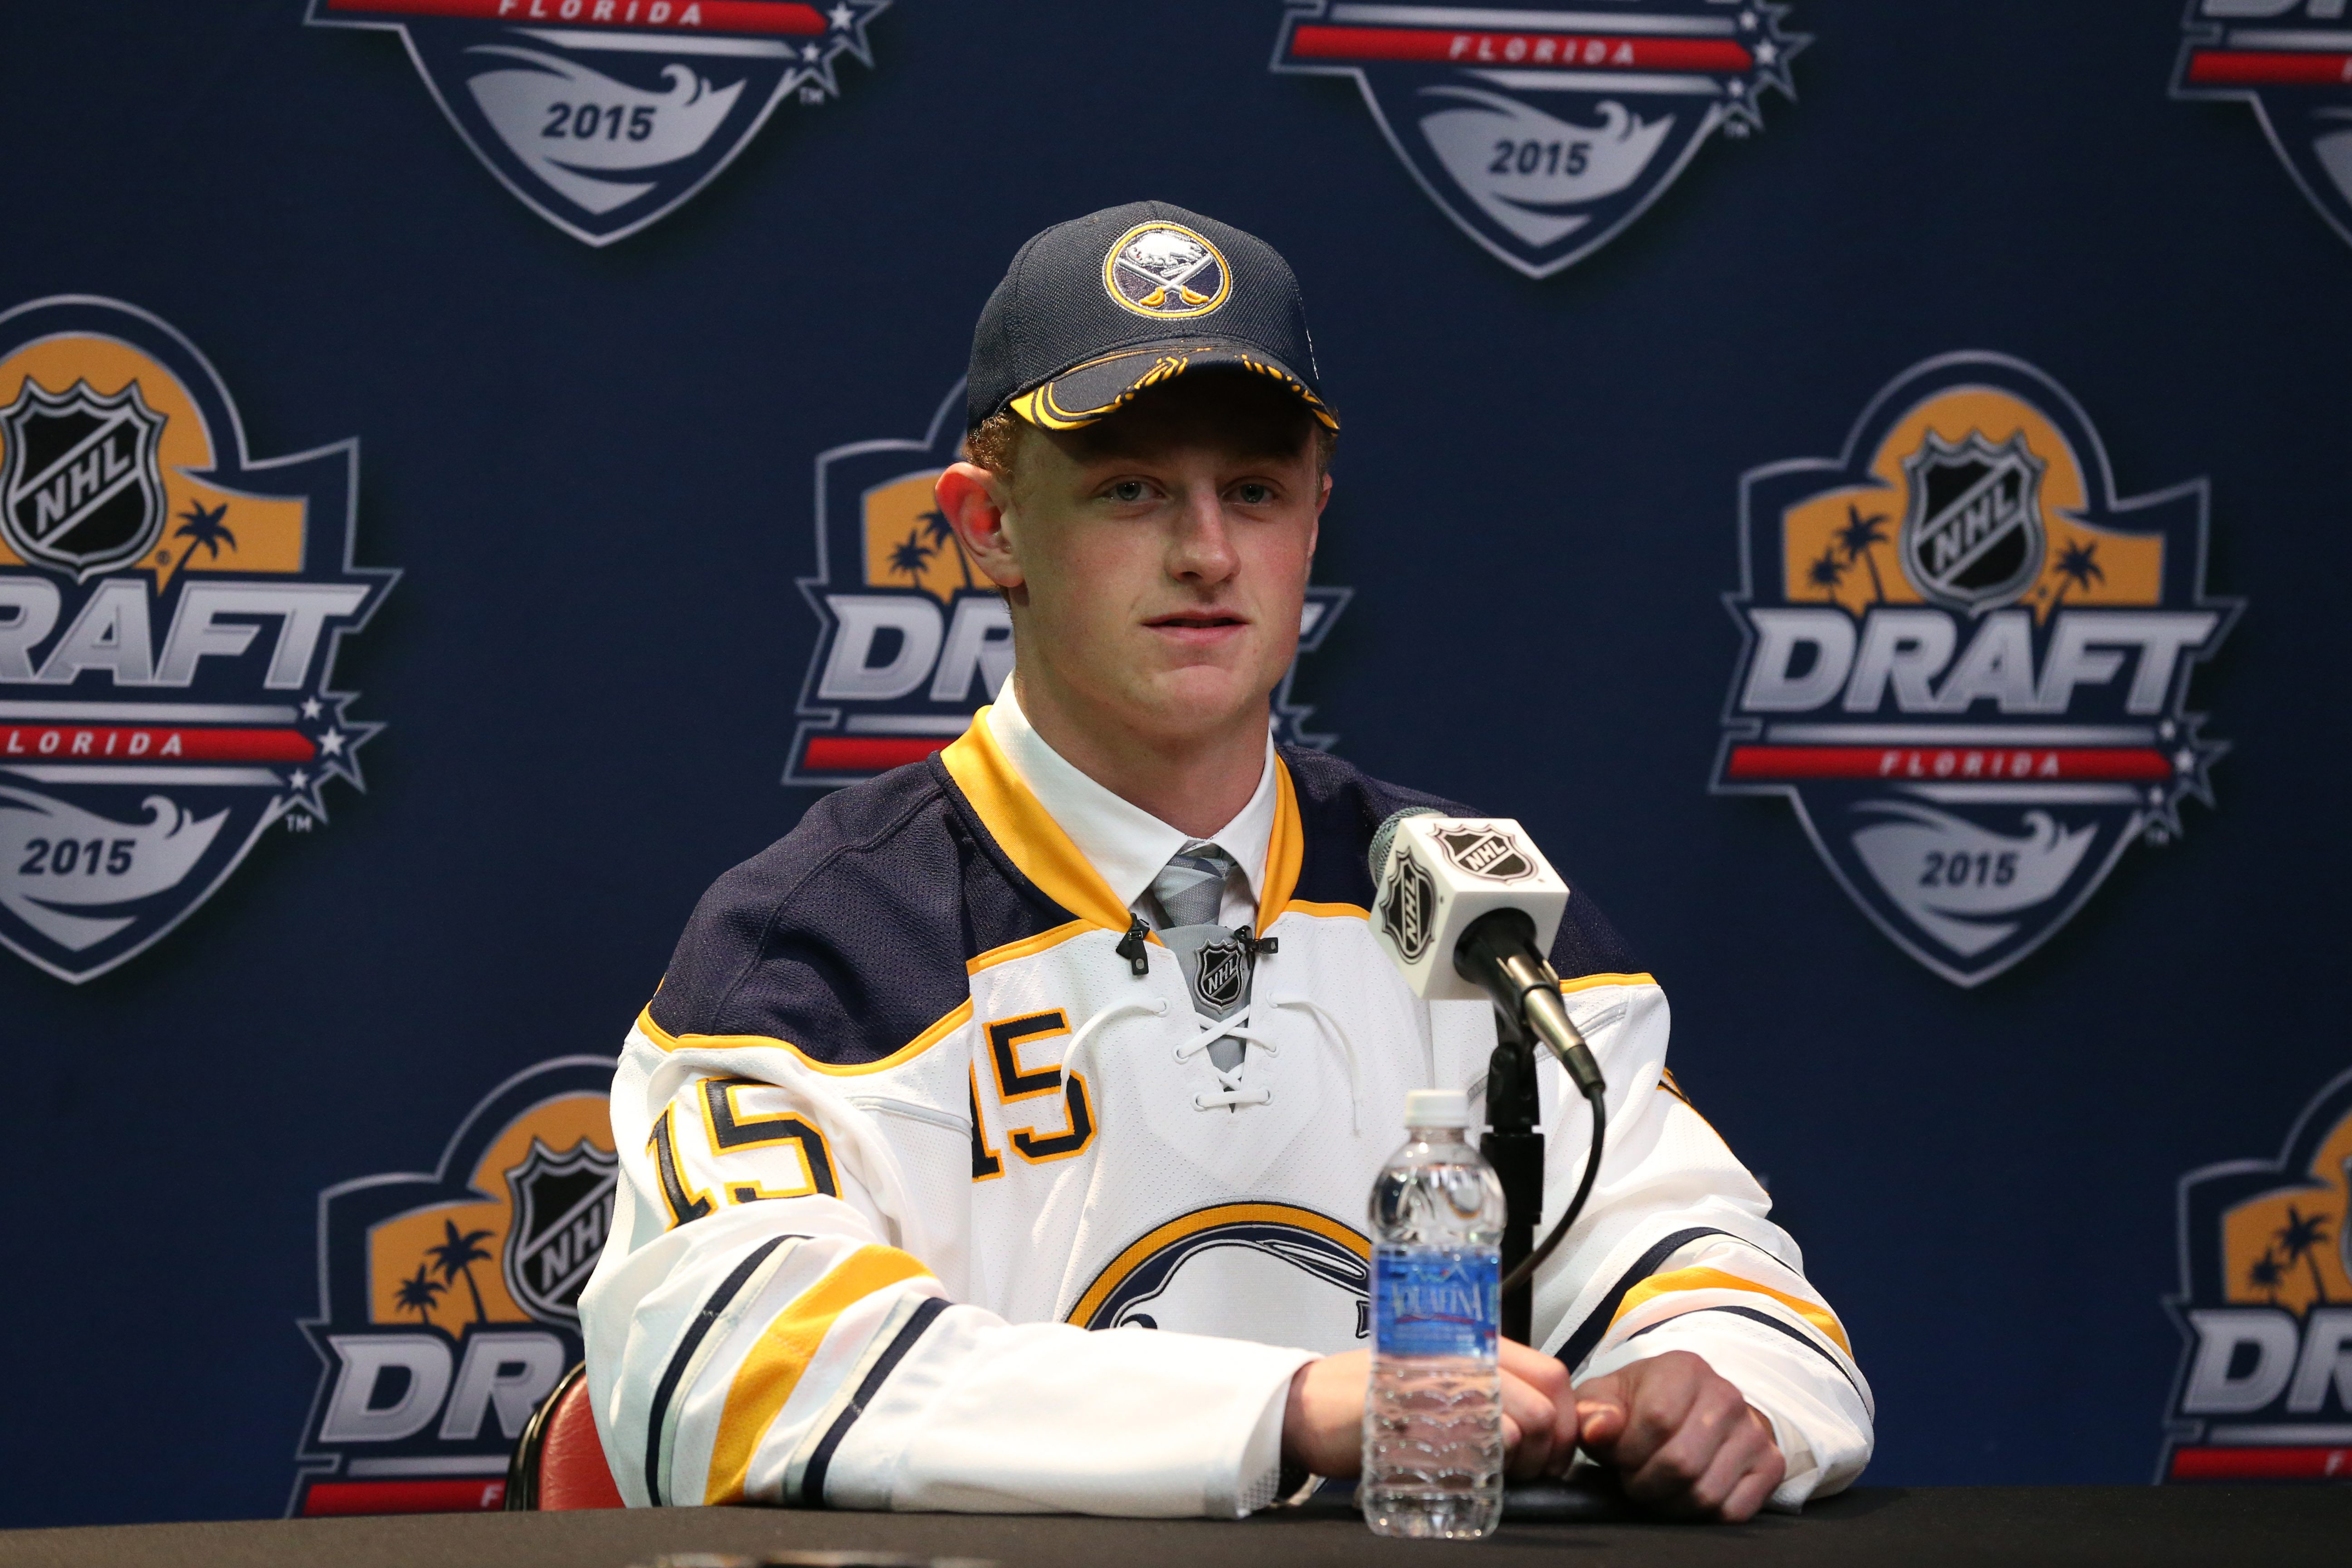 Jack Eichel will wear No. 15 -- as he did on draft night -- for the Sabres. (James P. McCoy/Buffalo News)